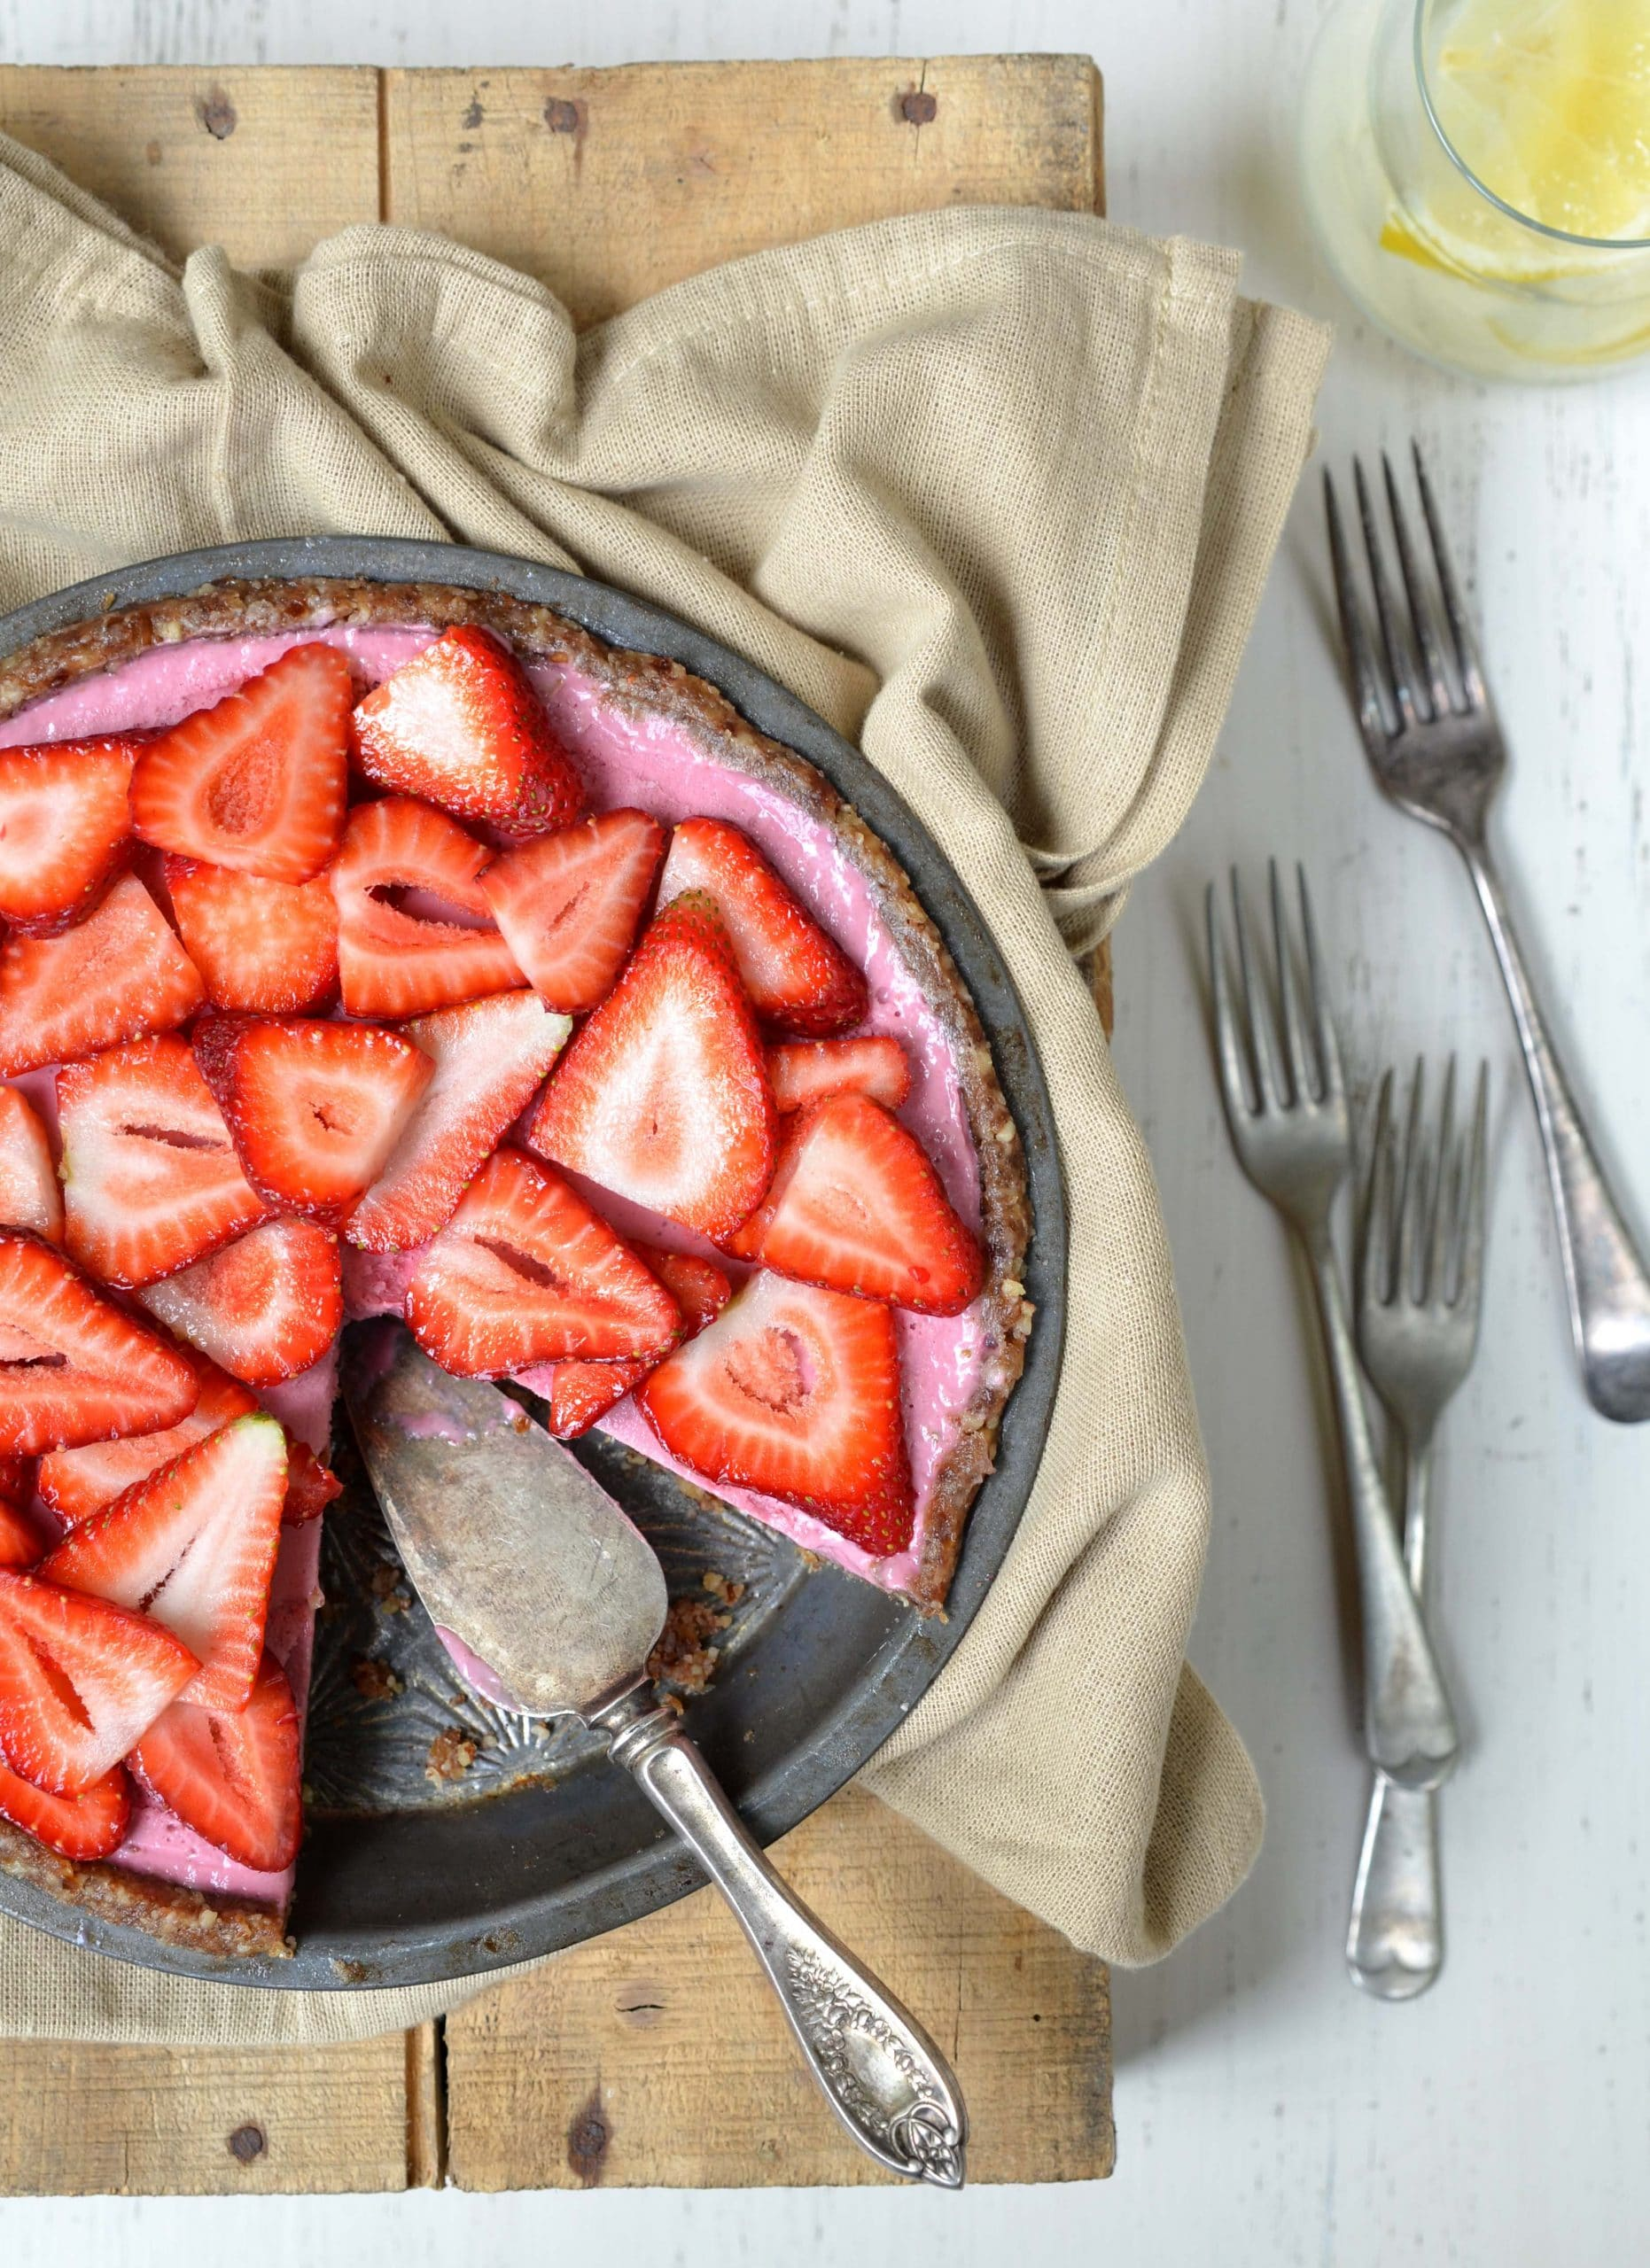 vegan strawberry pie with a slice missing from the pan